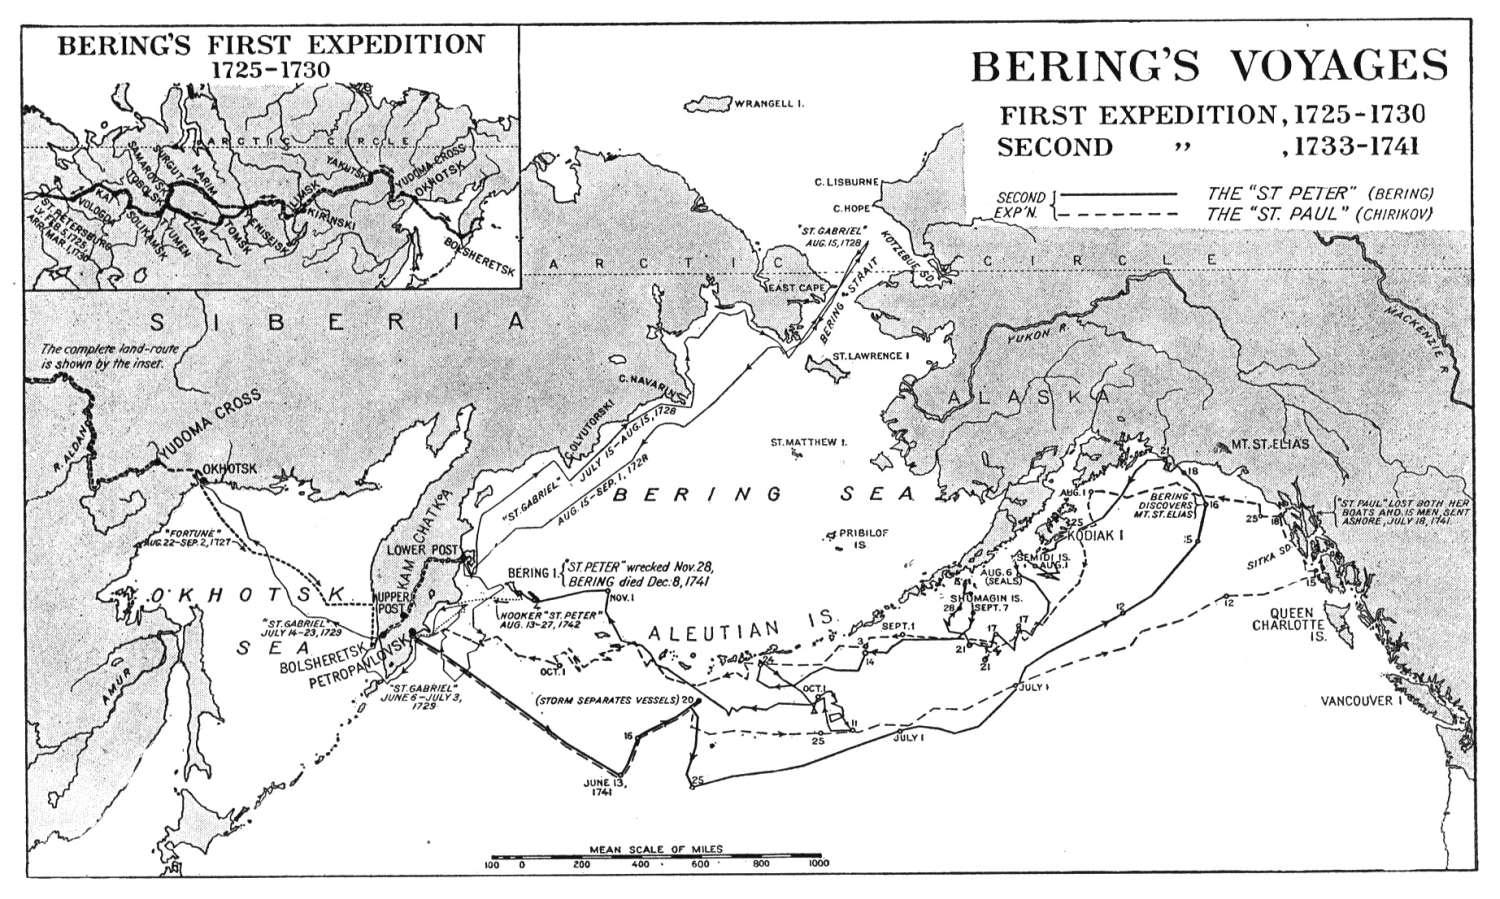 Map of the First and Second Voyages of Vitus Bering.